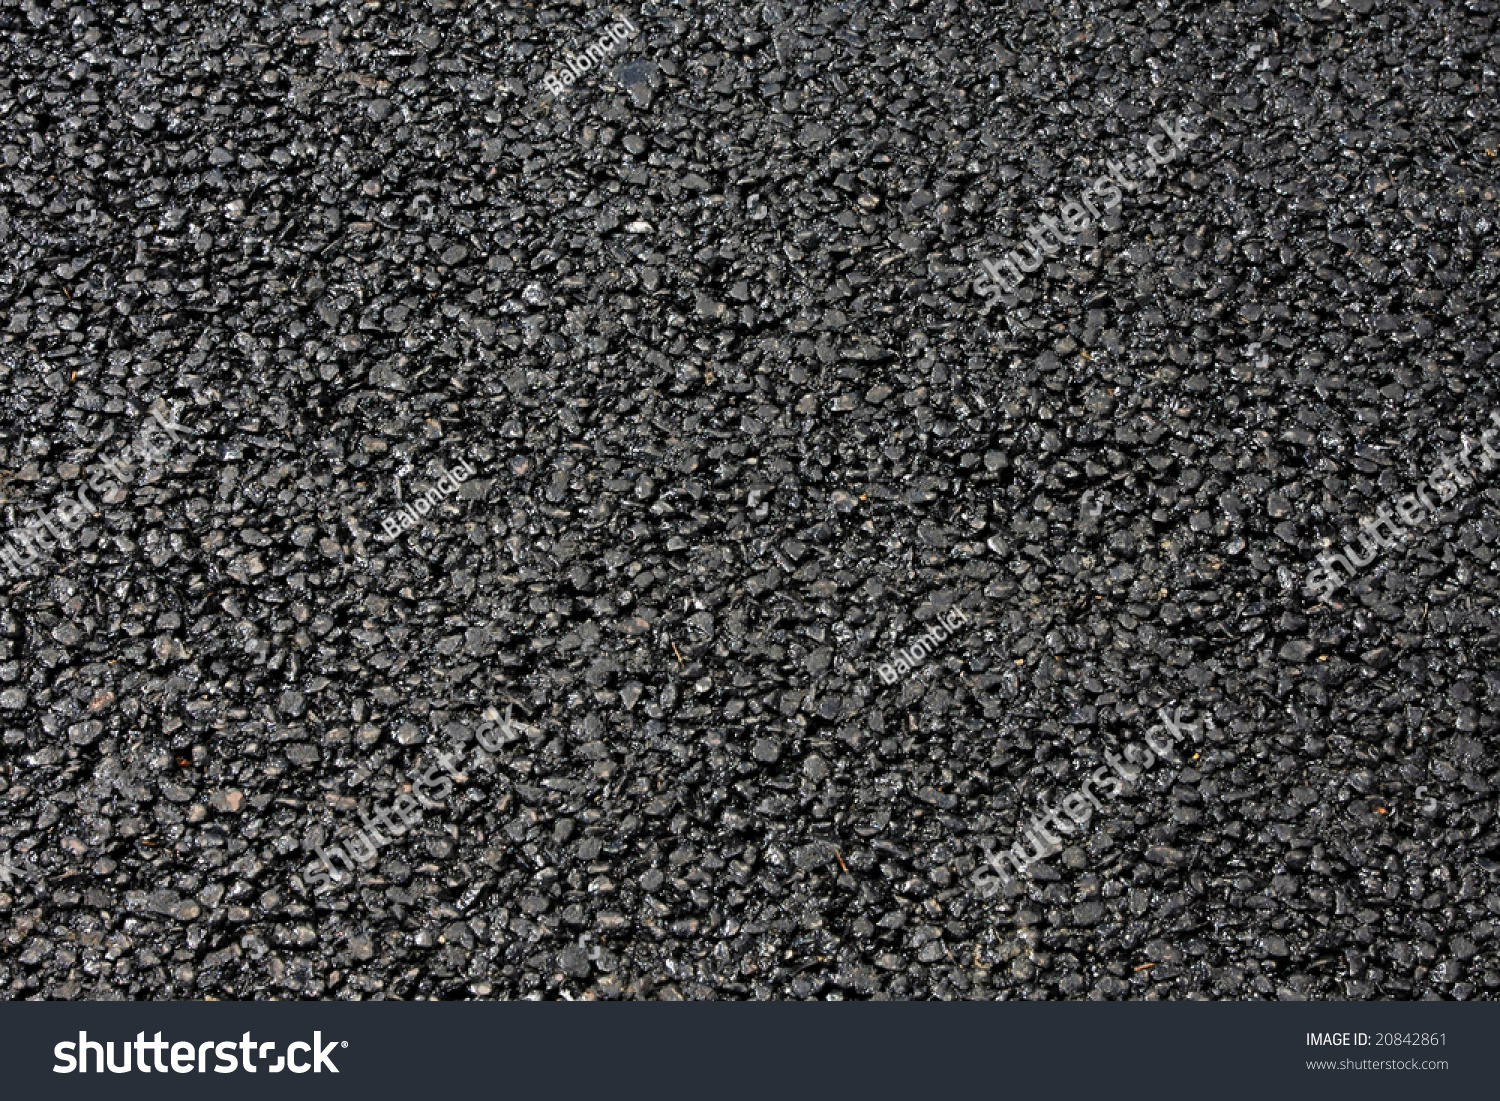 Road Construction Materials : Background texture of road construction material asphalt